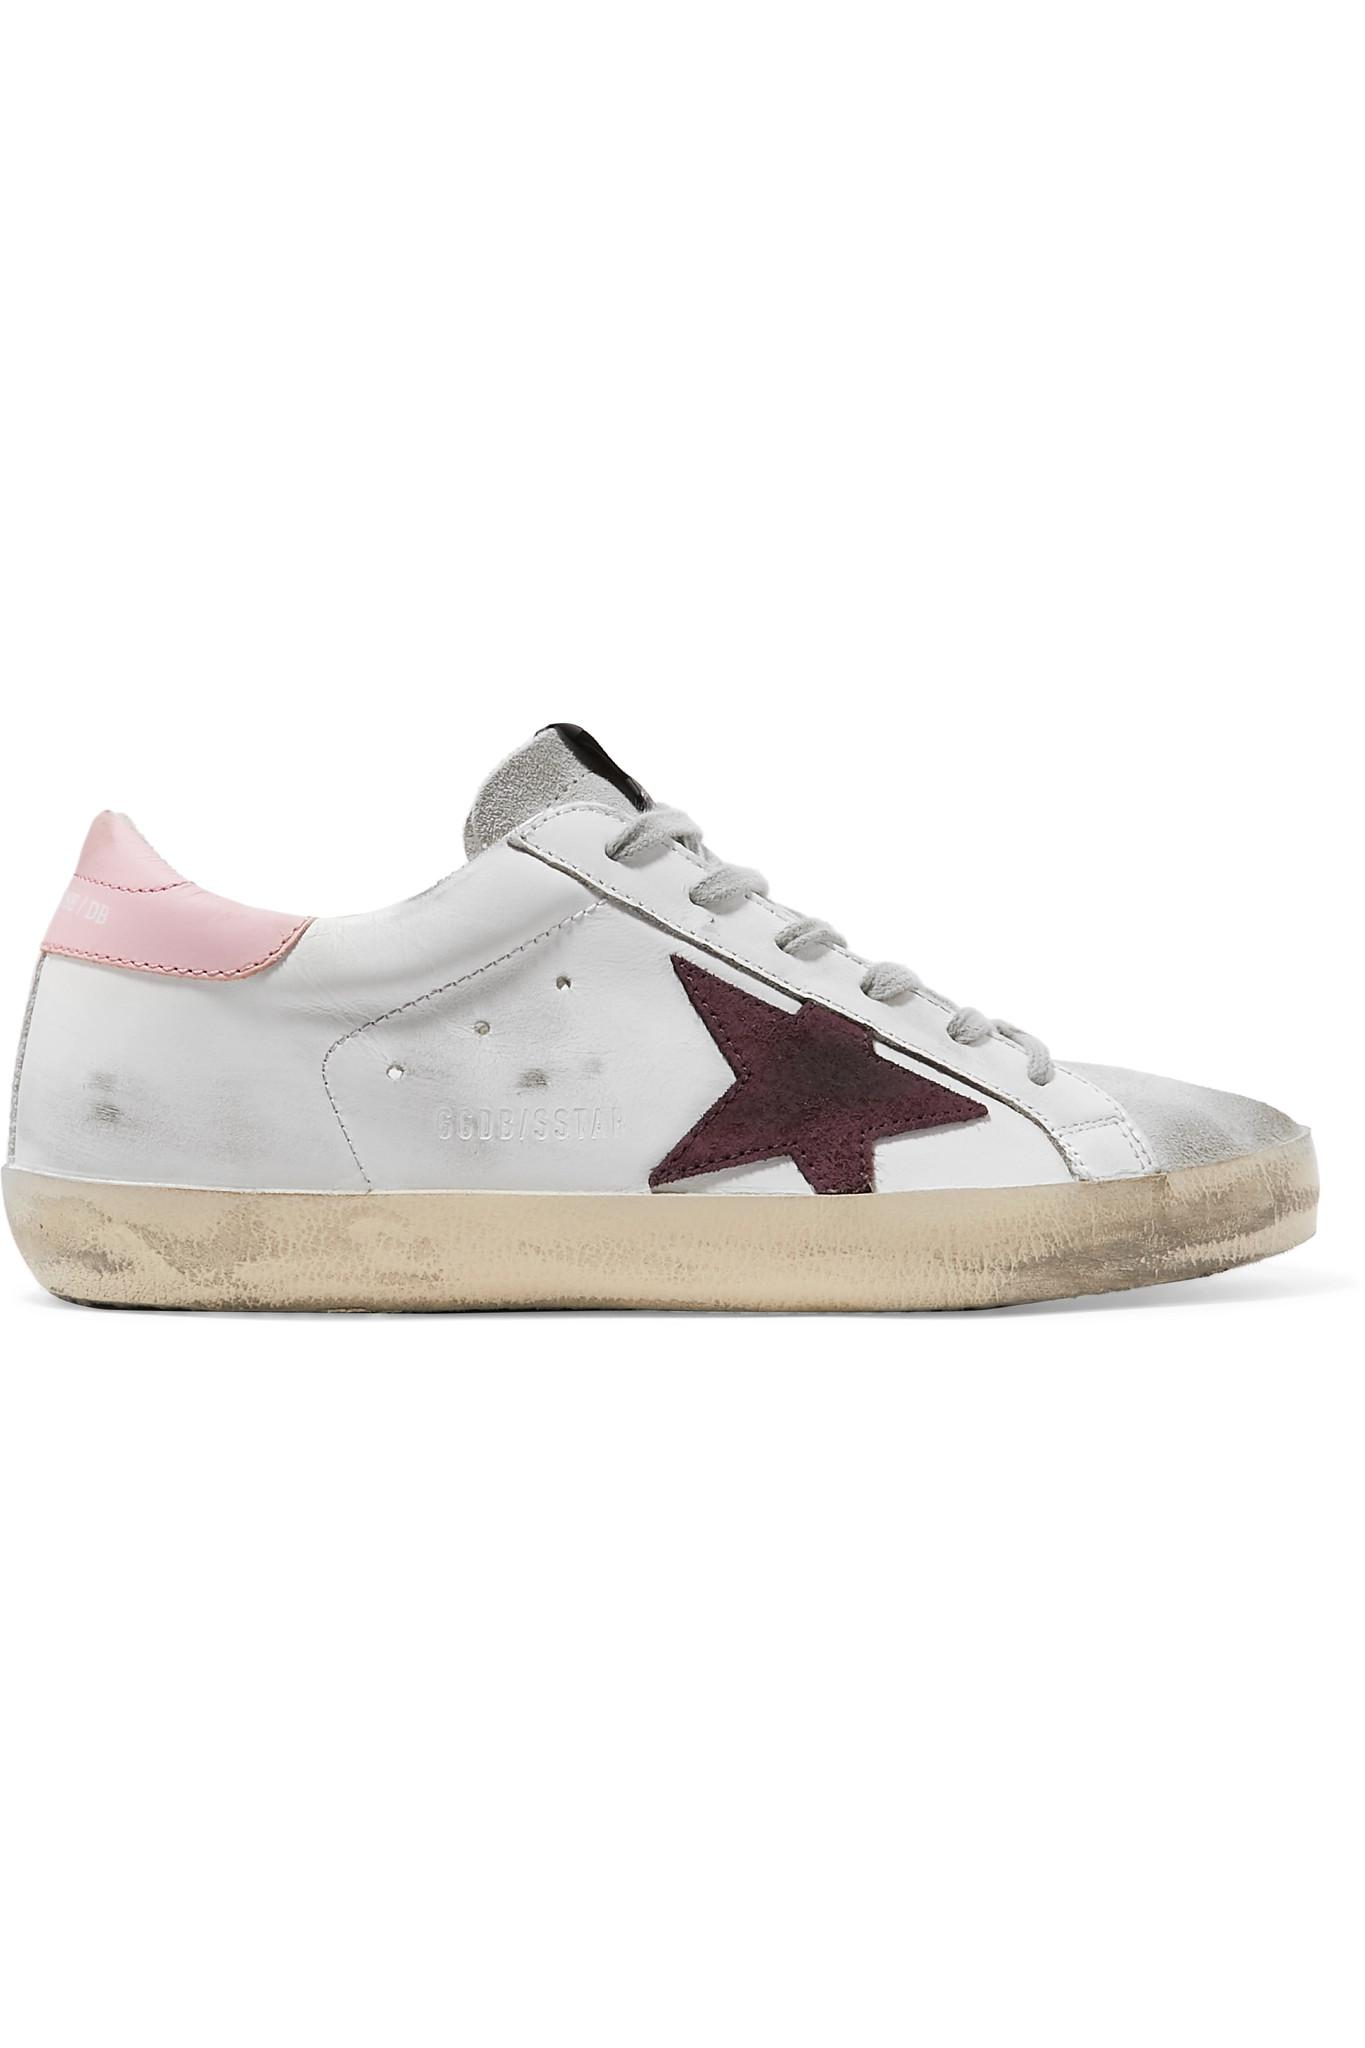 4d1f18ca44c0b3 Lyst - Golden Goose Deluxe Brand Superstar Distressed Leather And ...